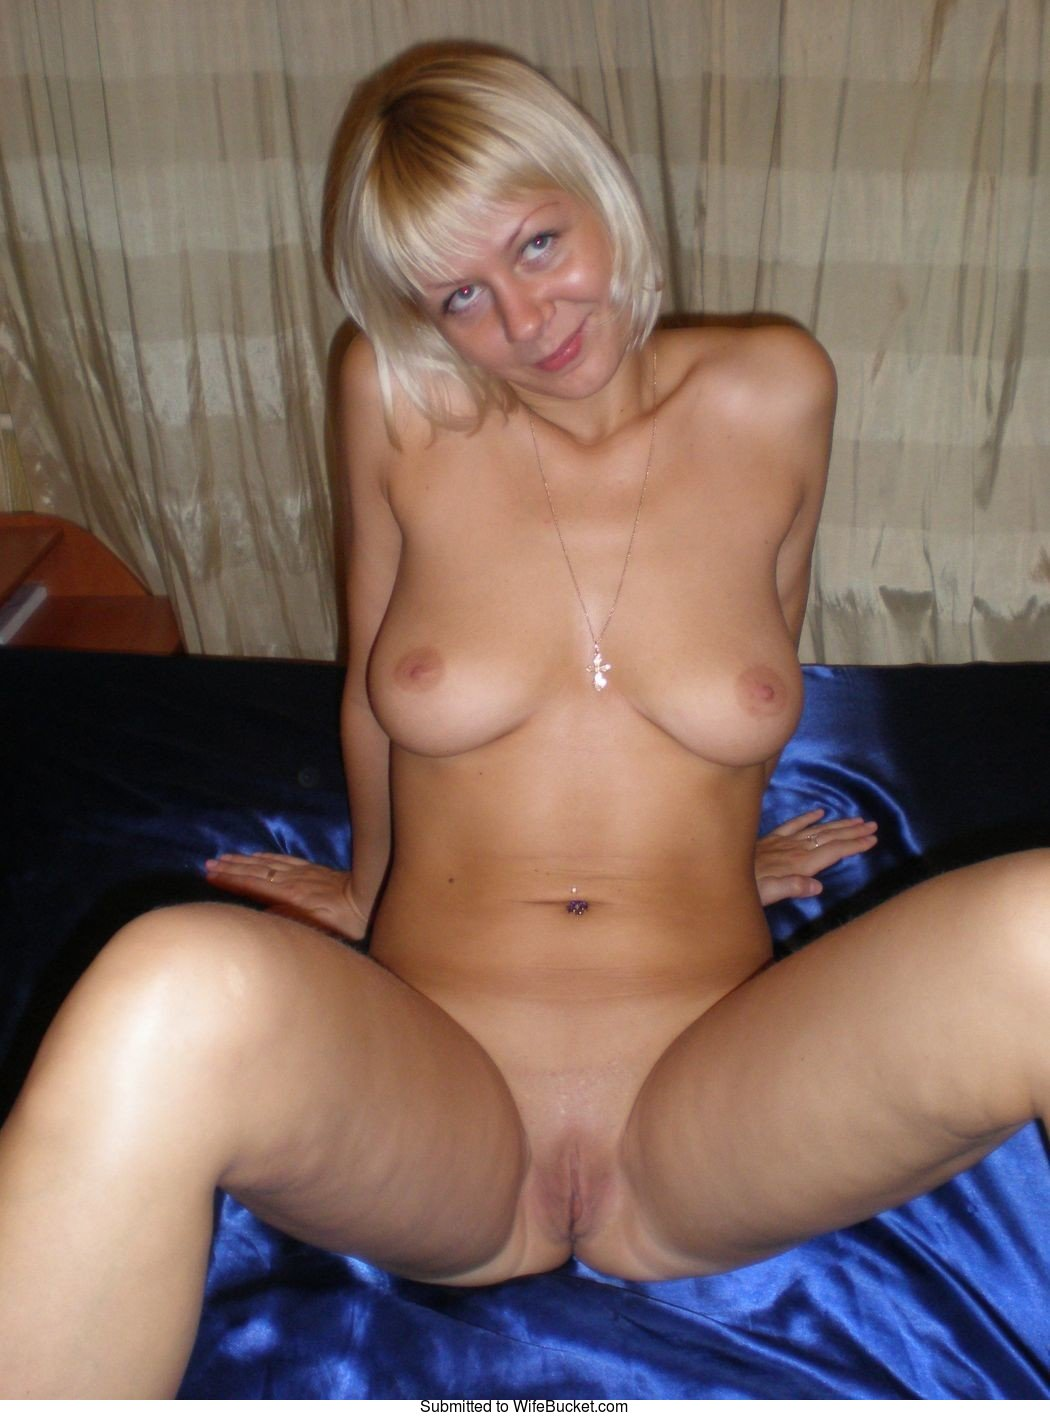 Hot Mature Tight Woman